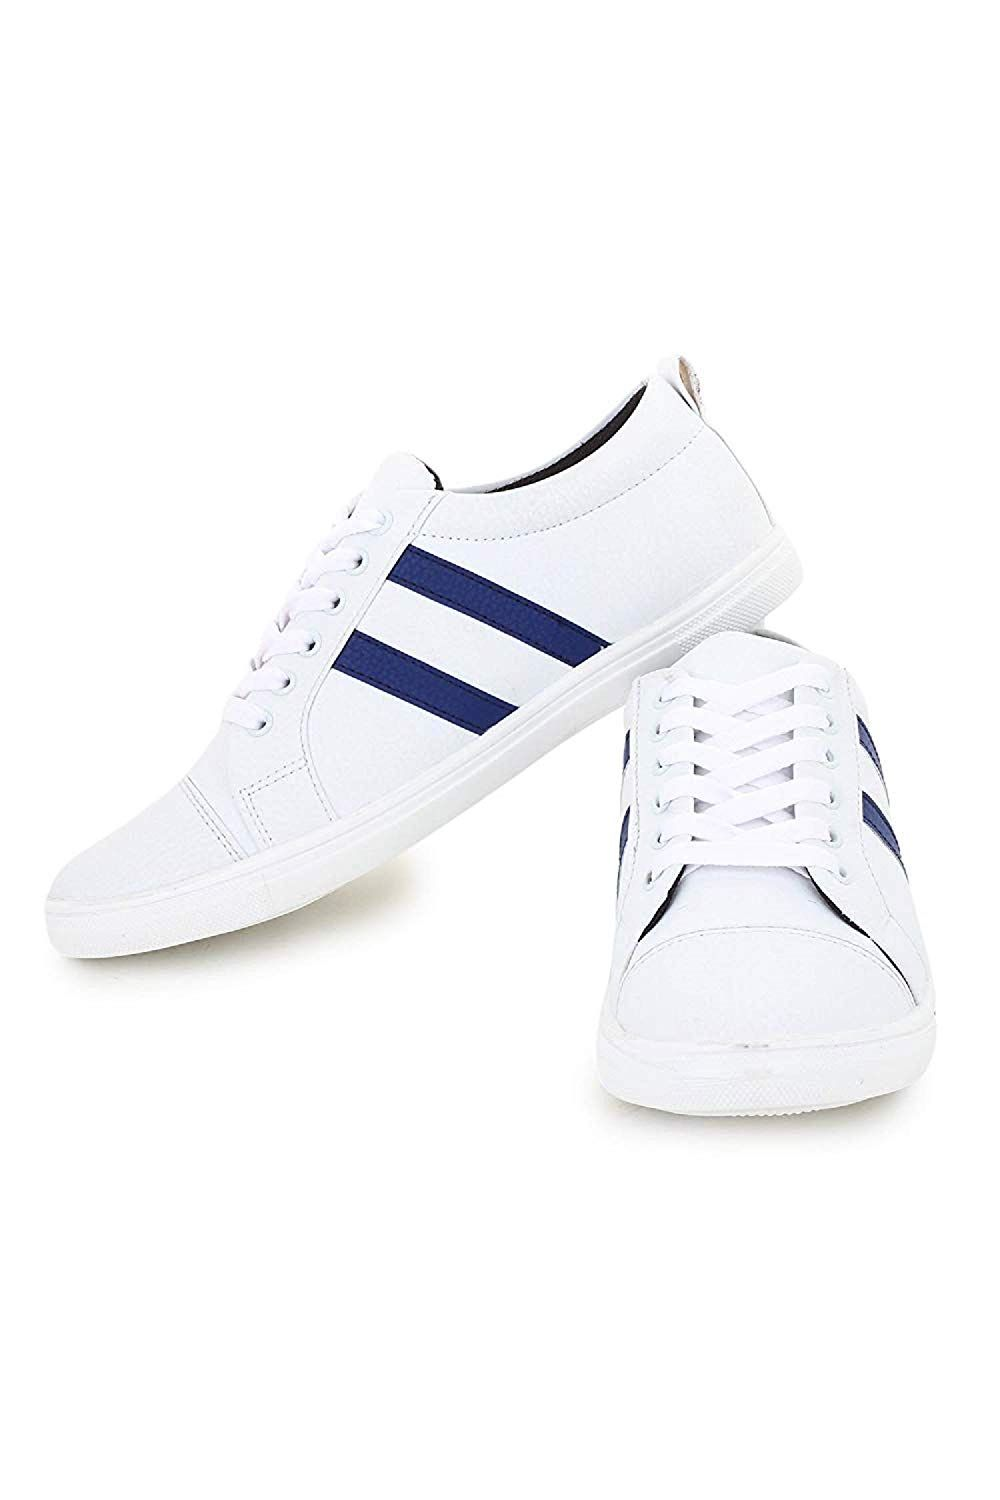 White shoes men, Mens sneakers casual